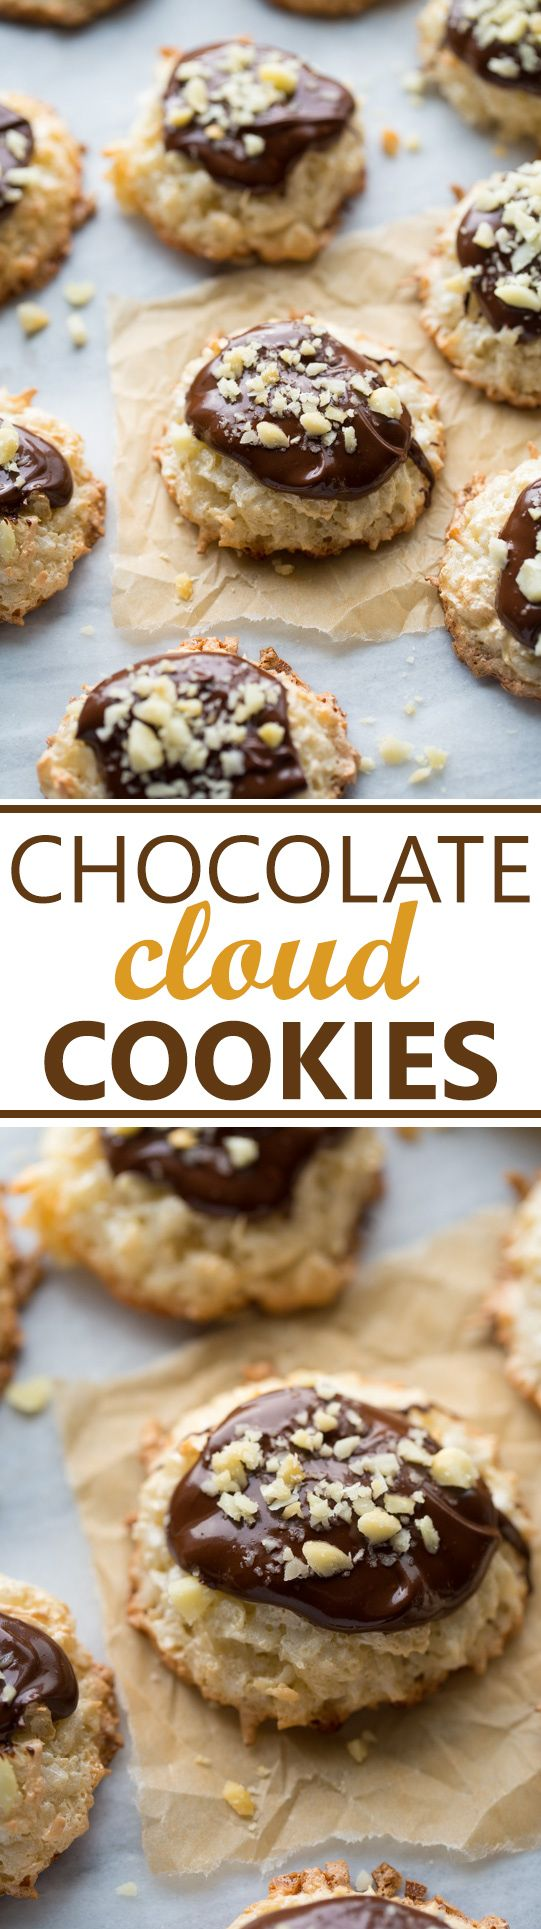 Chocolate Coconut Cloud Cookies! A cross between a meringue and a macaroon. Soft and chewy with crispy edges and covered in chocolate and macadamia nuts! (Gluten-Free)